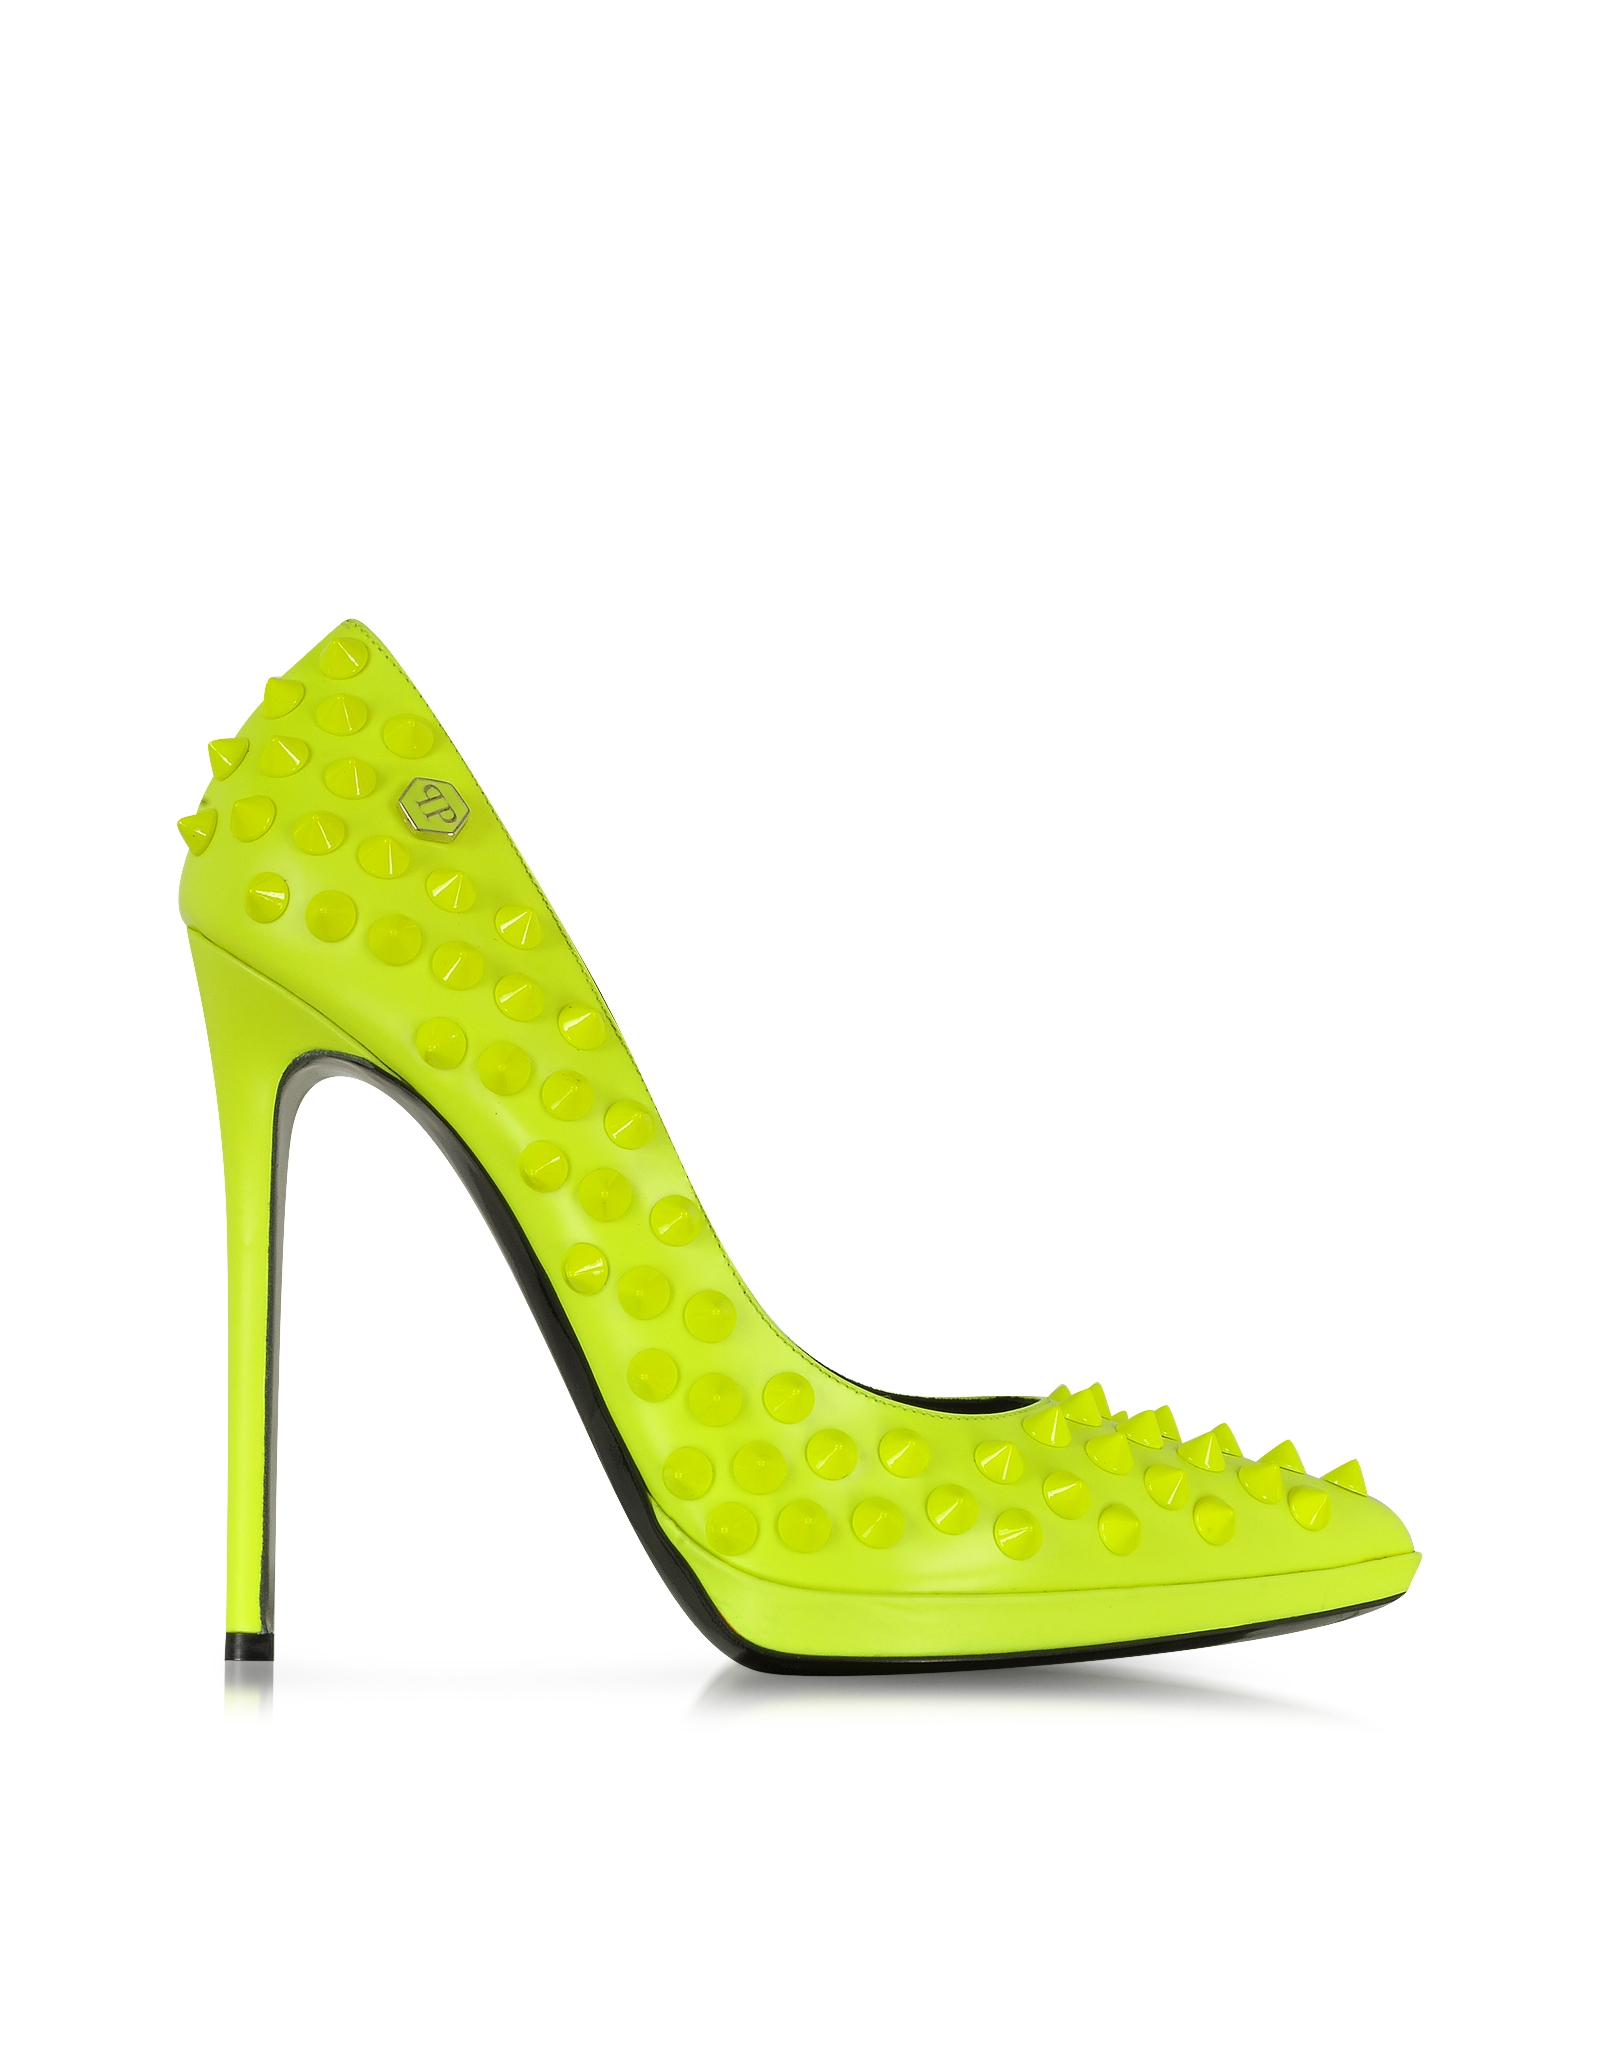 Lyst - Philipp plein Neon Yellow High Heels Pop Studded Pump in Green